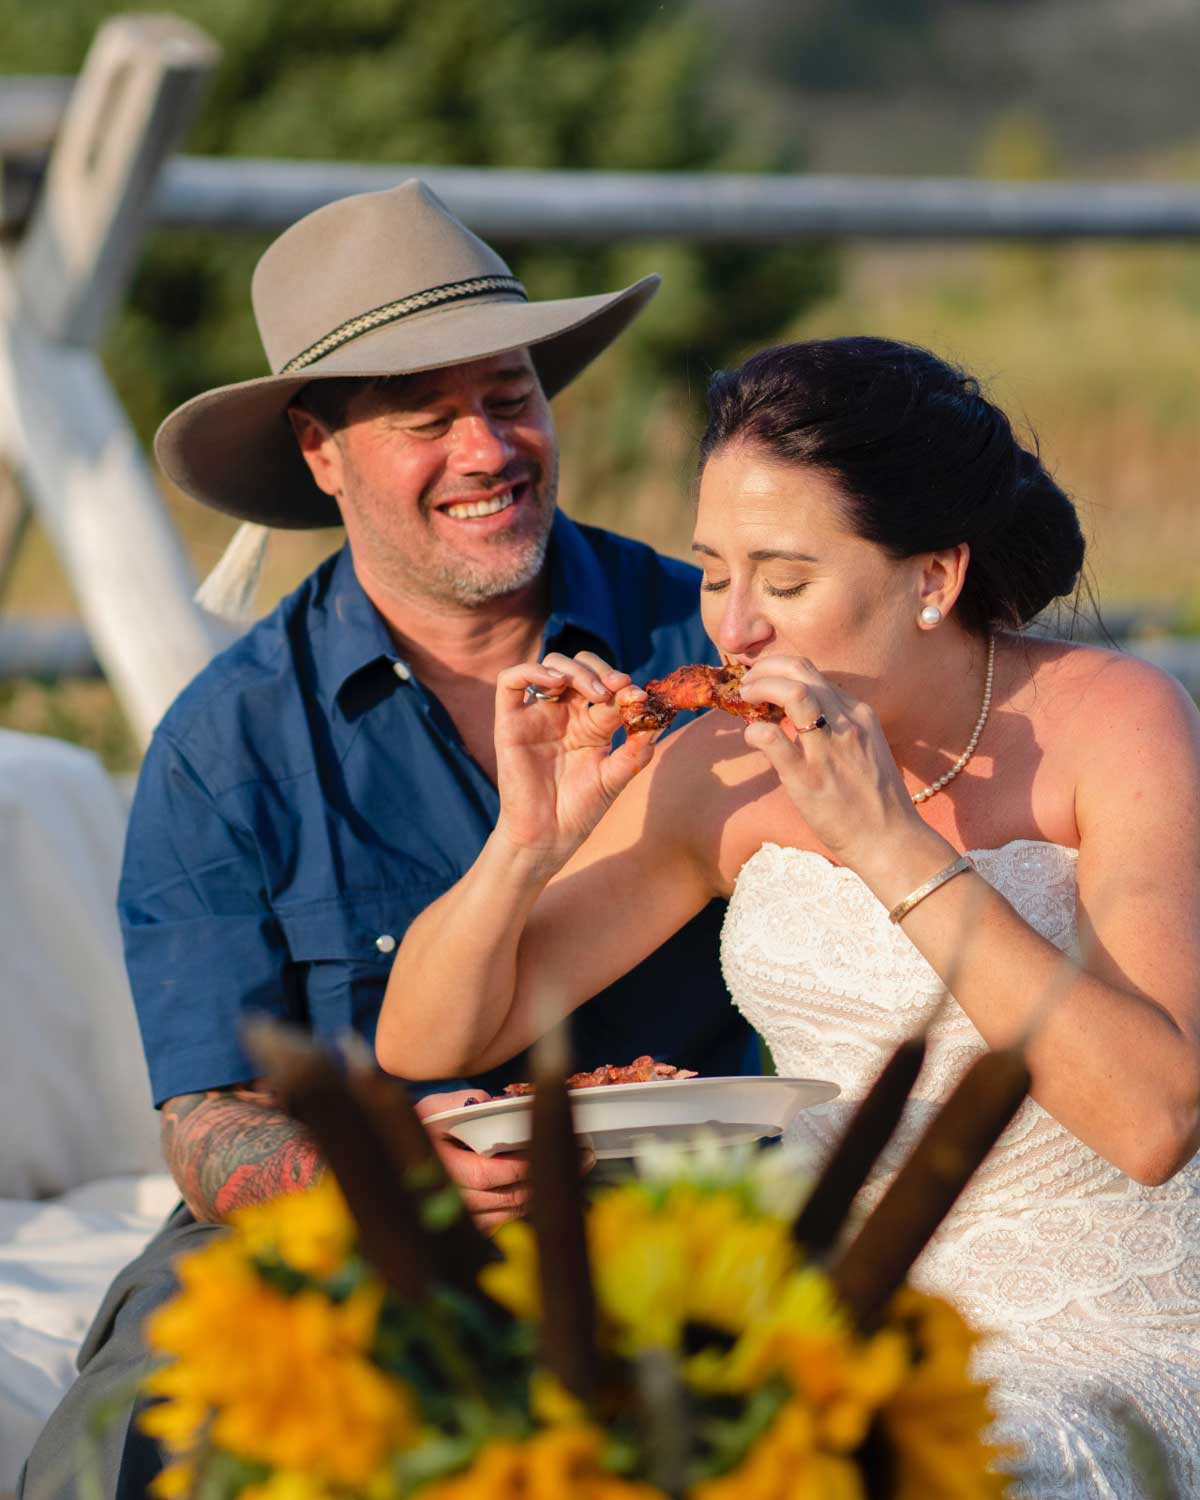 Riverhouse event photography showing a couple eating BBQ together